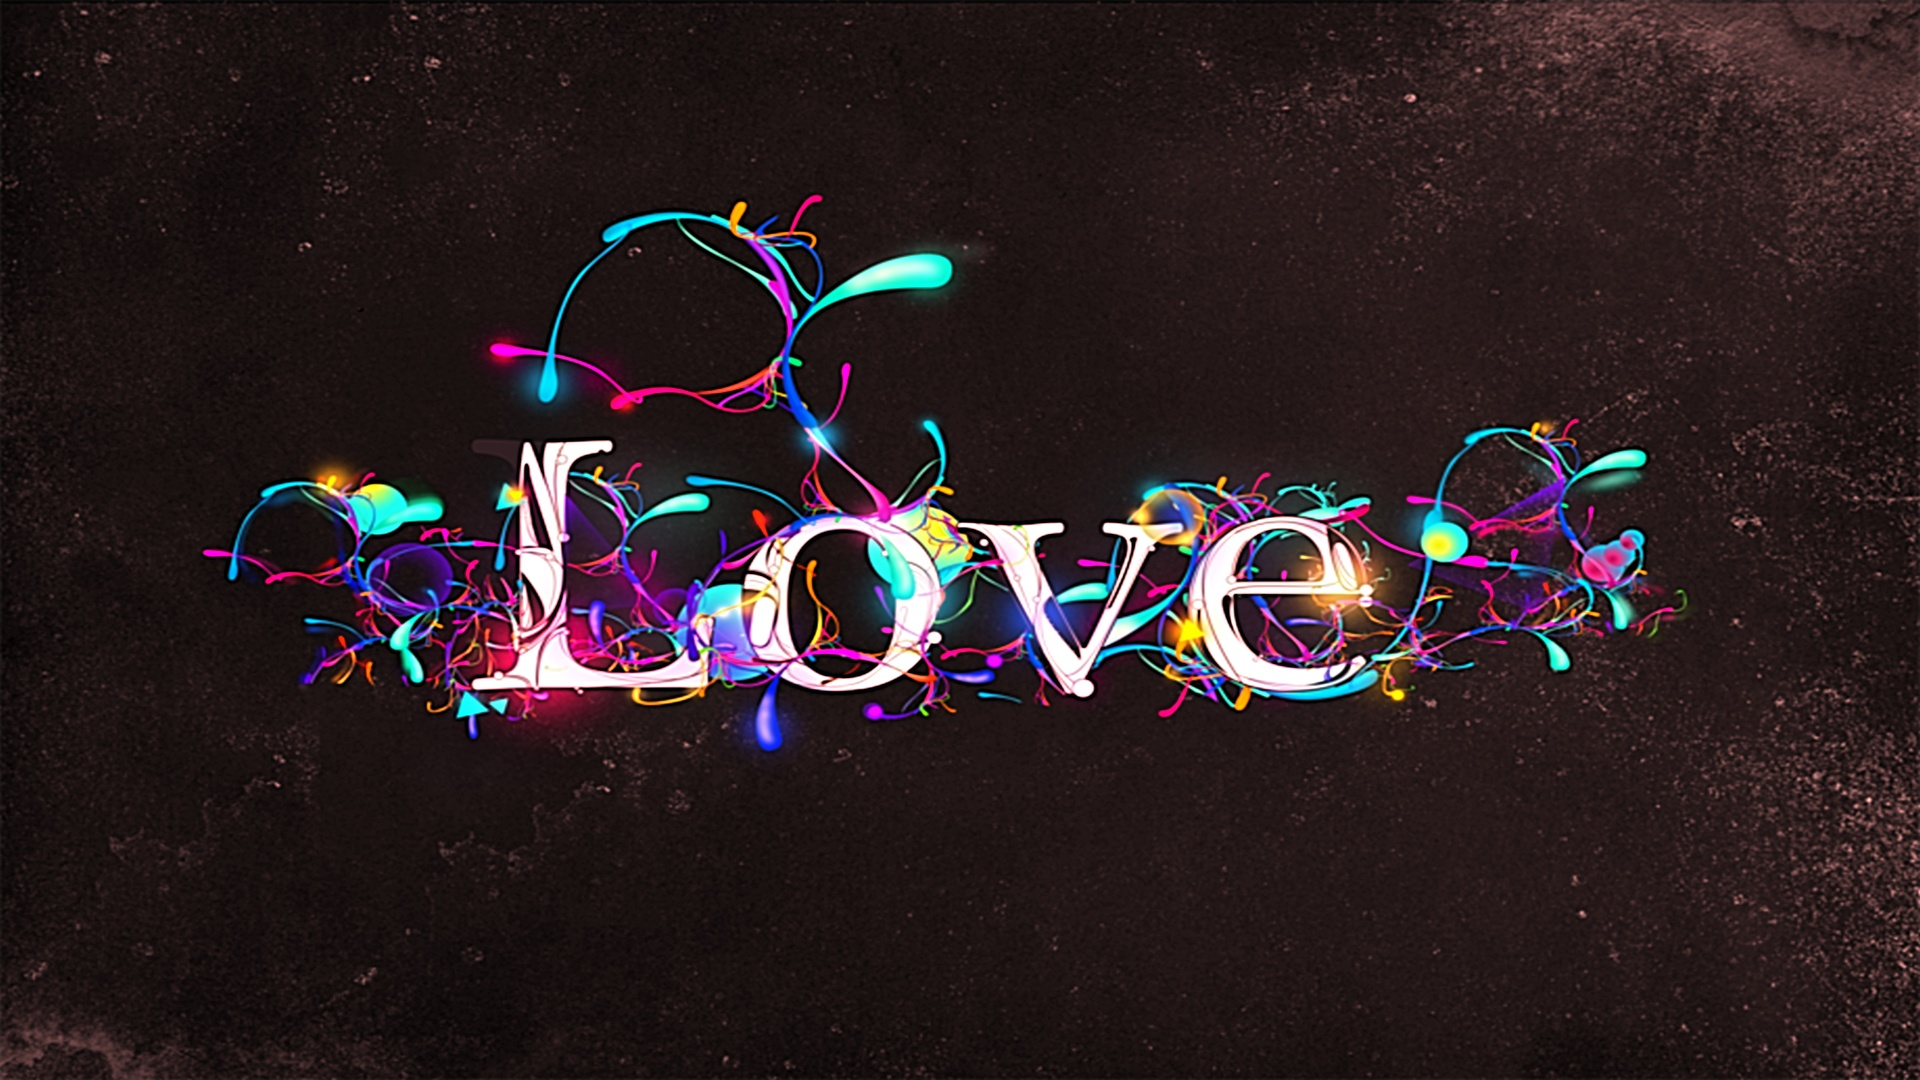 Artistic Love Wallpaper